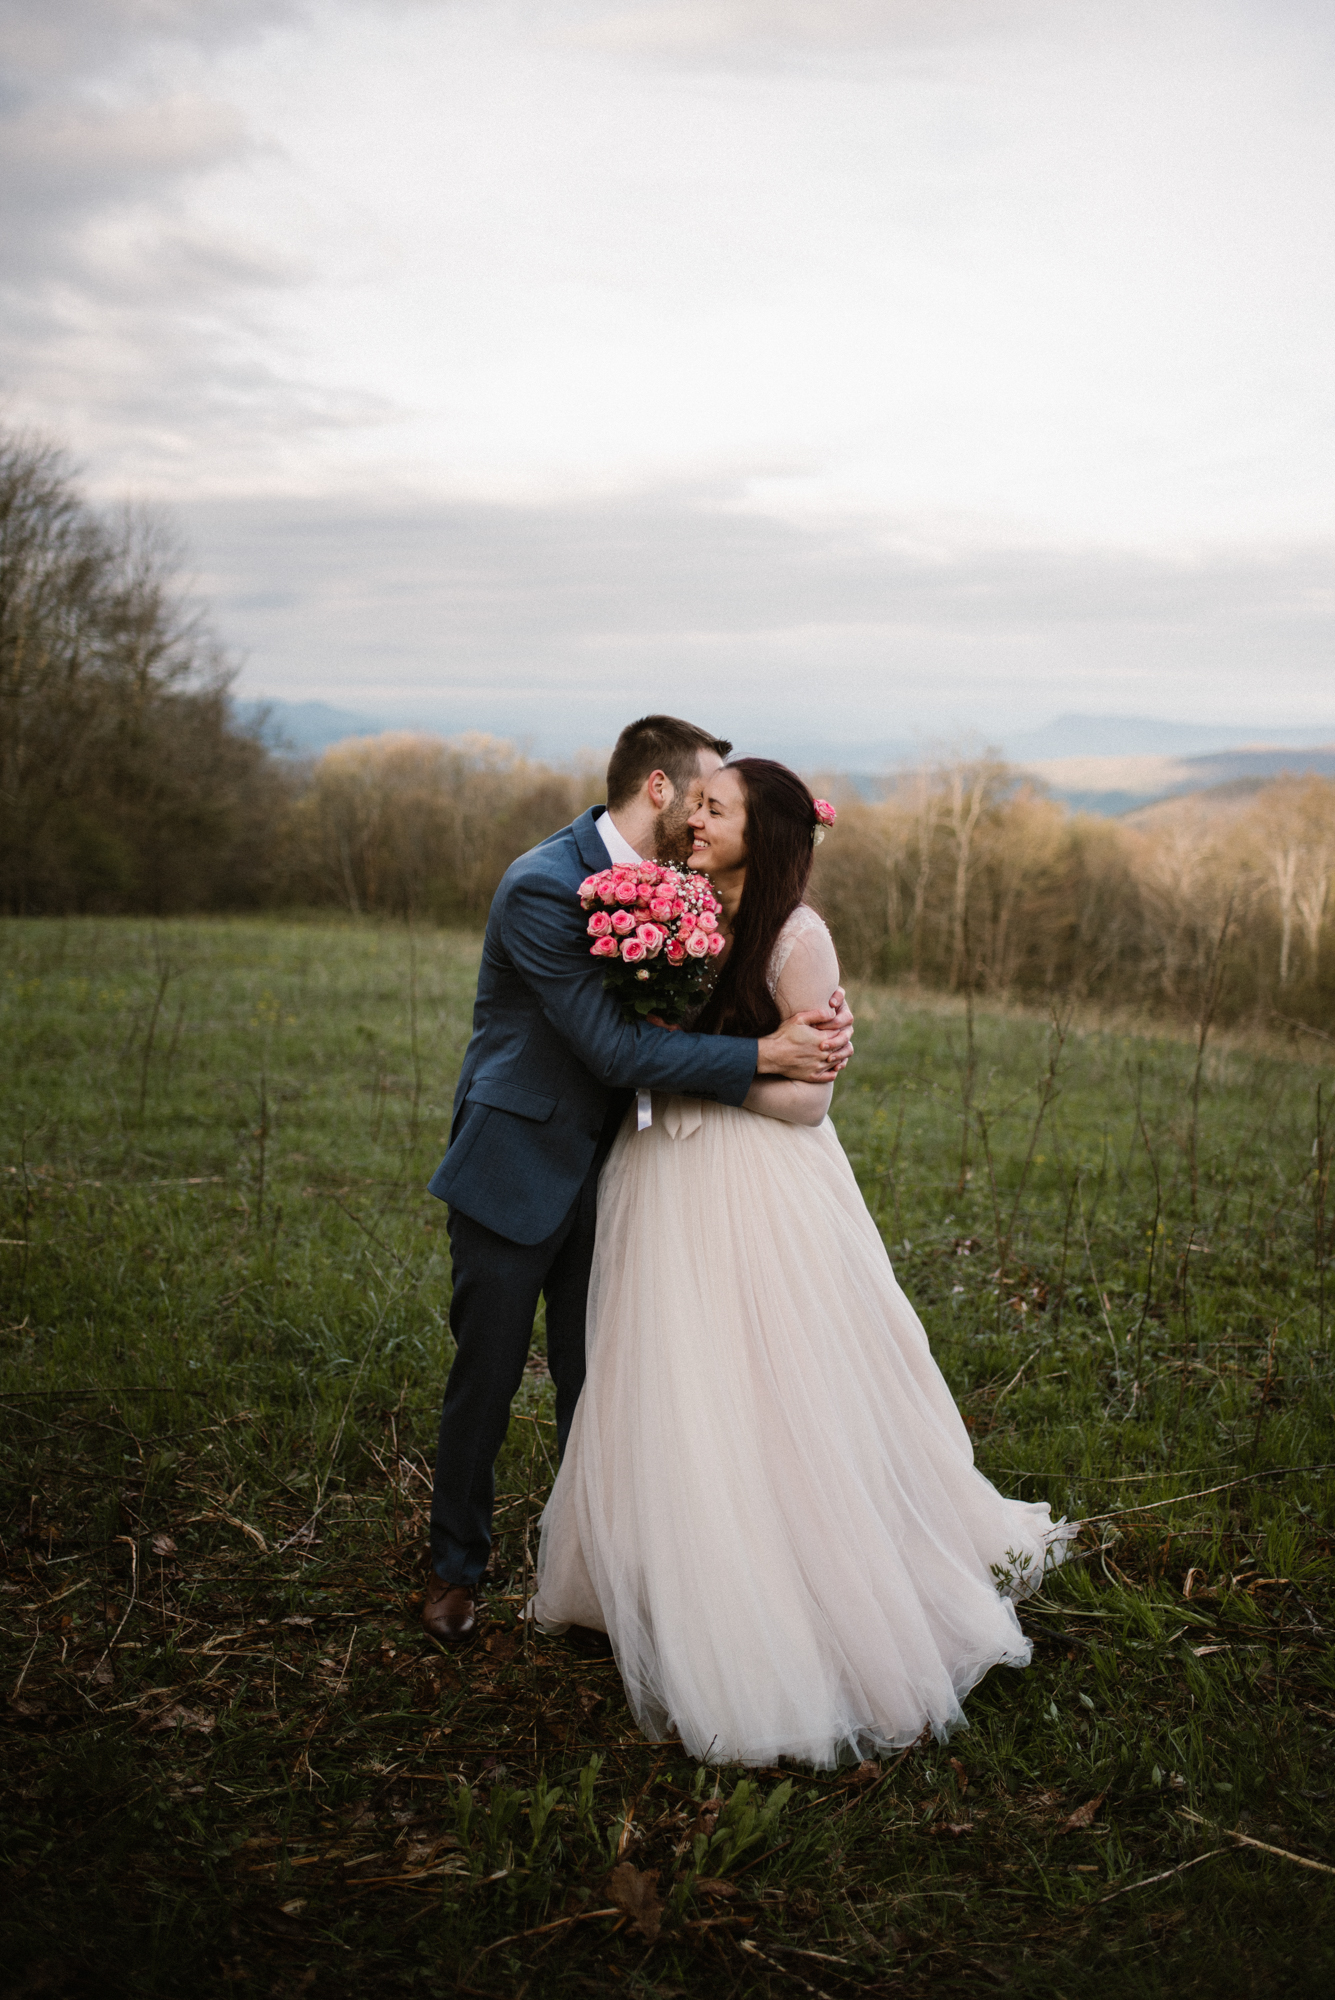 Paula and Andrew - Small Adventurous Wedding in Shenandoah National Park - Blue Ridge Mountain Wedding - White Sails Creative - Mountain Elopement_28.jpg